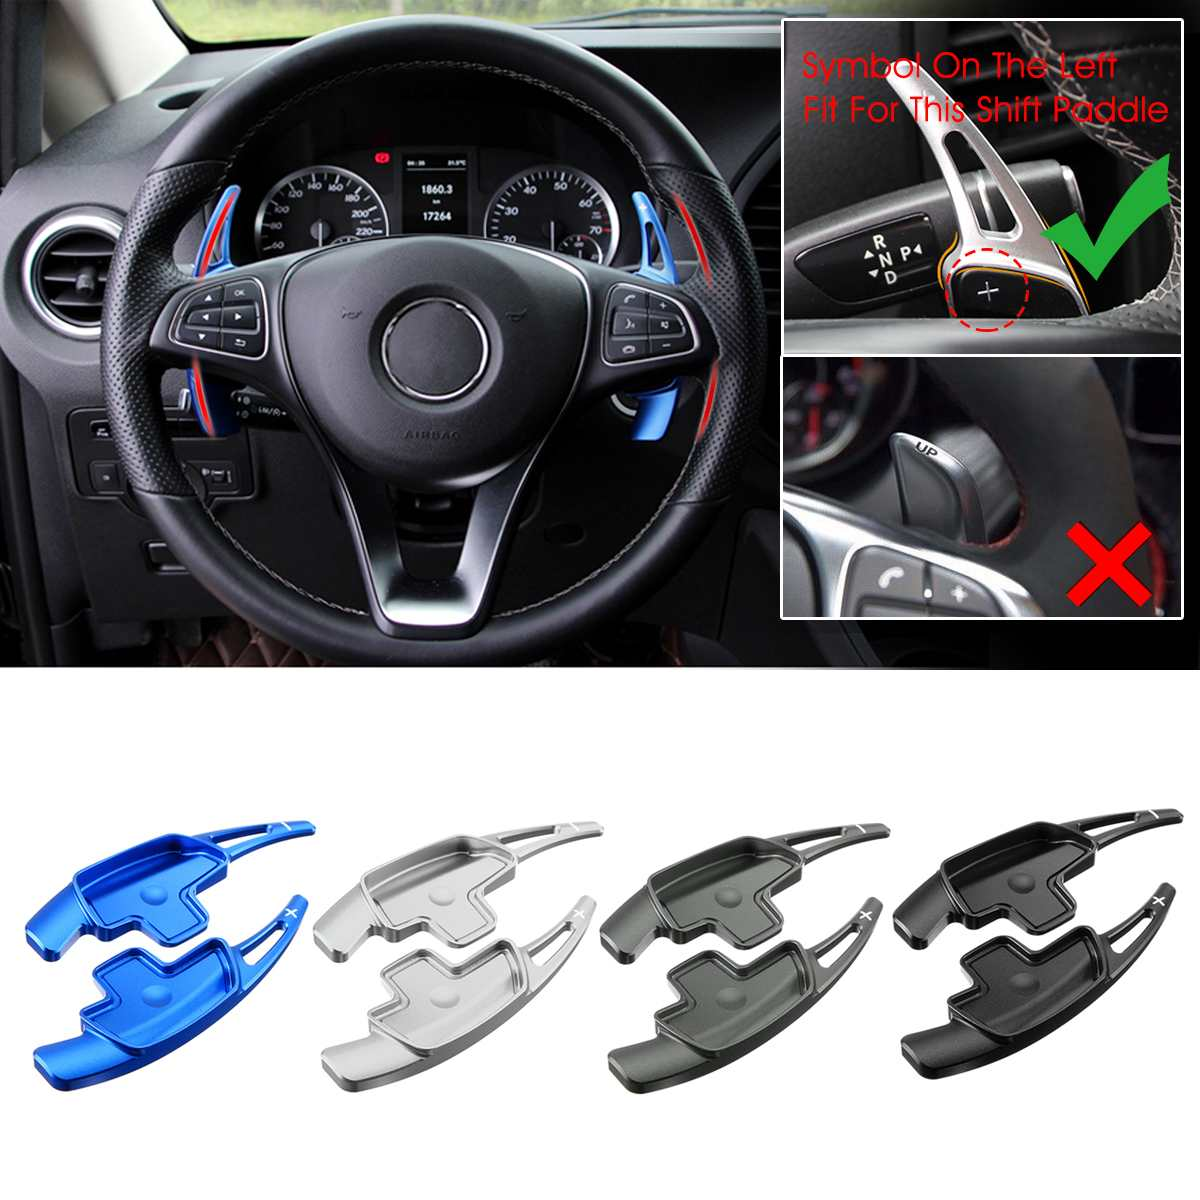 Pair Car Steering Wheel Shift Paddle Extension For Benz A B C E Class CLA CLS E GLC GLE S SL SLCPair Car Steering Wheel Shift Paddle Extension For Benz A B C E Class CLA CLS E GLC GLE S SL SLC